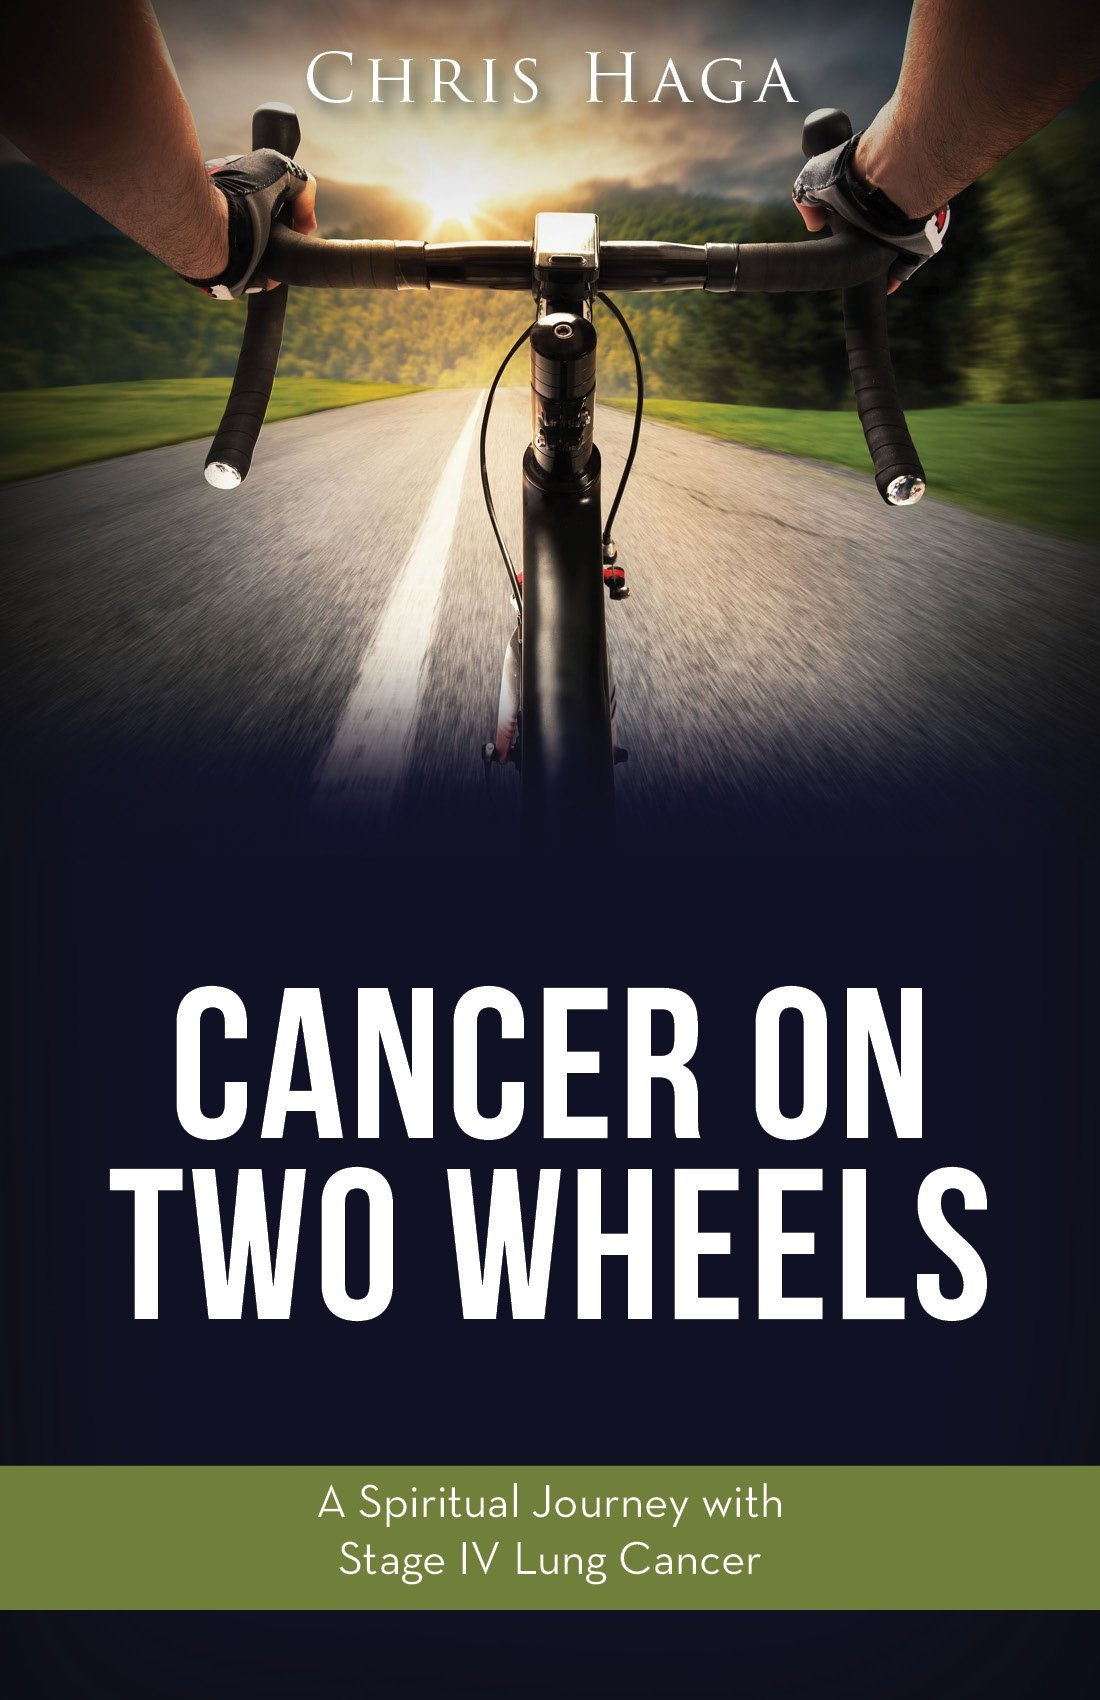 Cancer on Two Wheels: A Spiritual Journey with Stage IV Lung Cancer